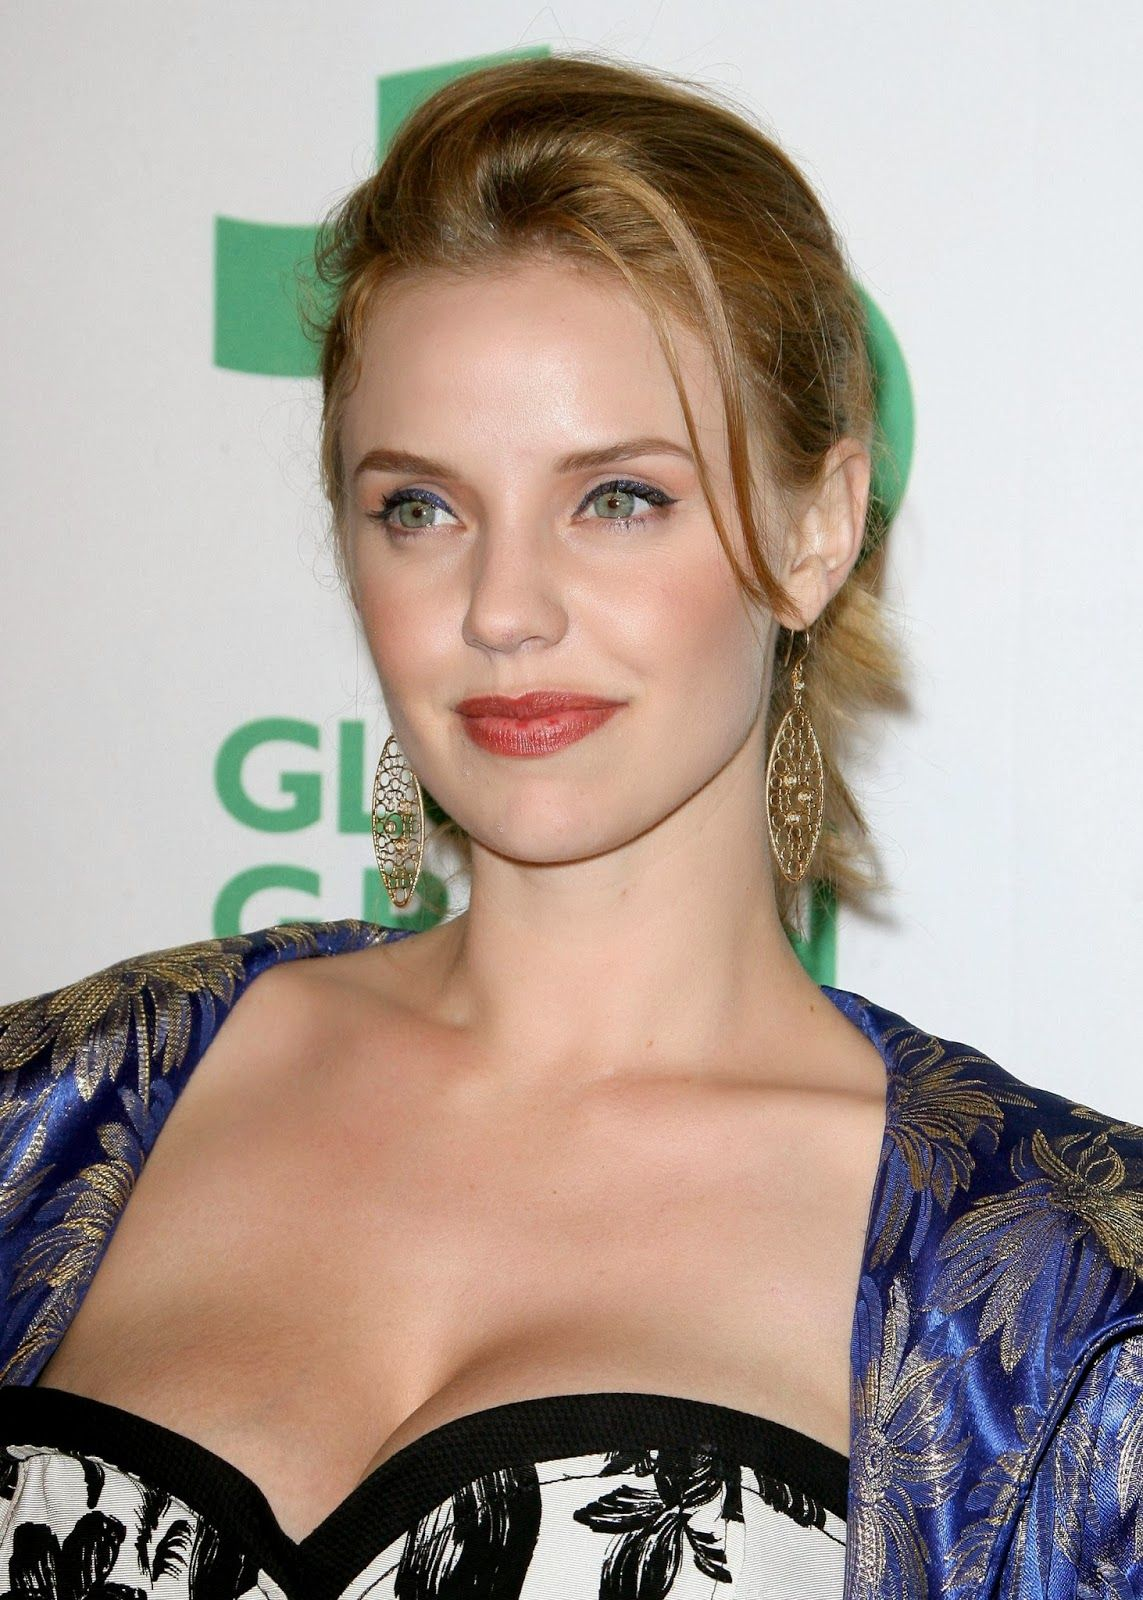 Cleavage Kelli Garner nude (57 photo), Pussy, Leaked, Boobs, braless 2018